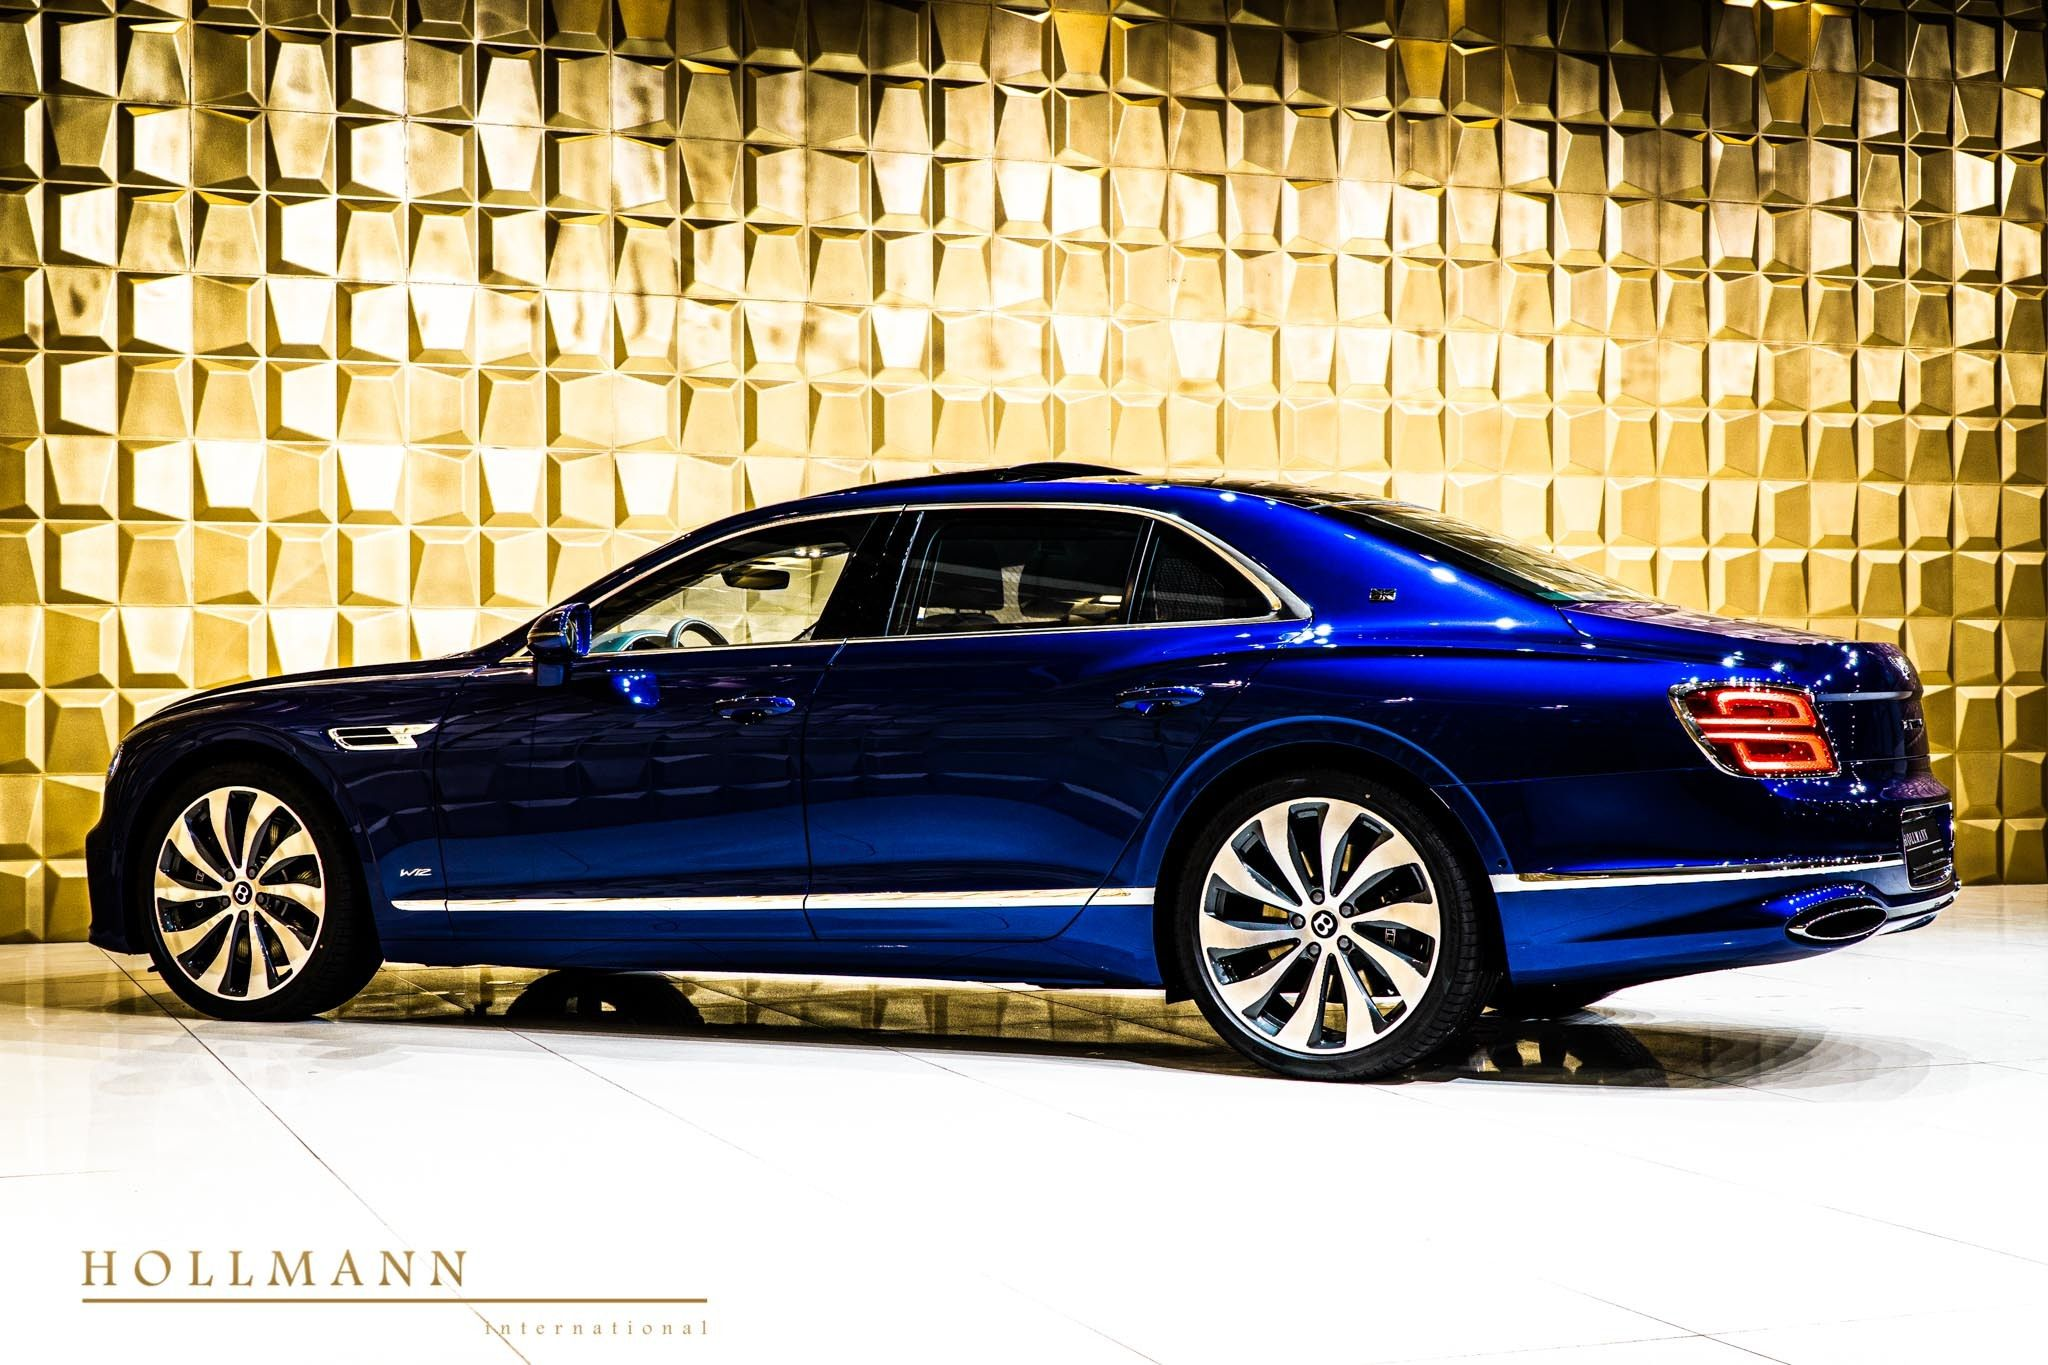 Bentley Flying Spur First Edition Hollmann International Germany For Sale On Luxurypulse In 2020 Flying Spur Bentley Flying Spur Bentley